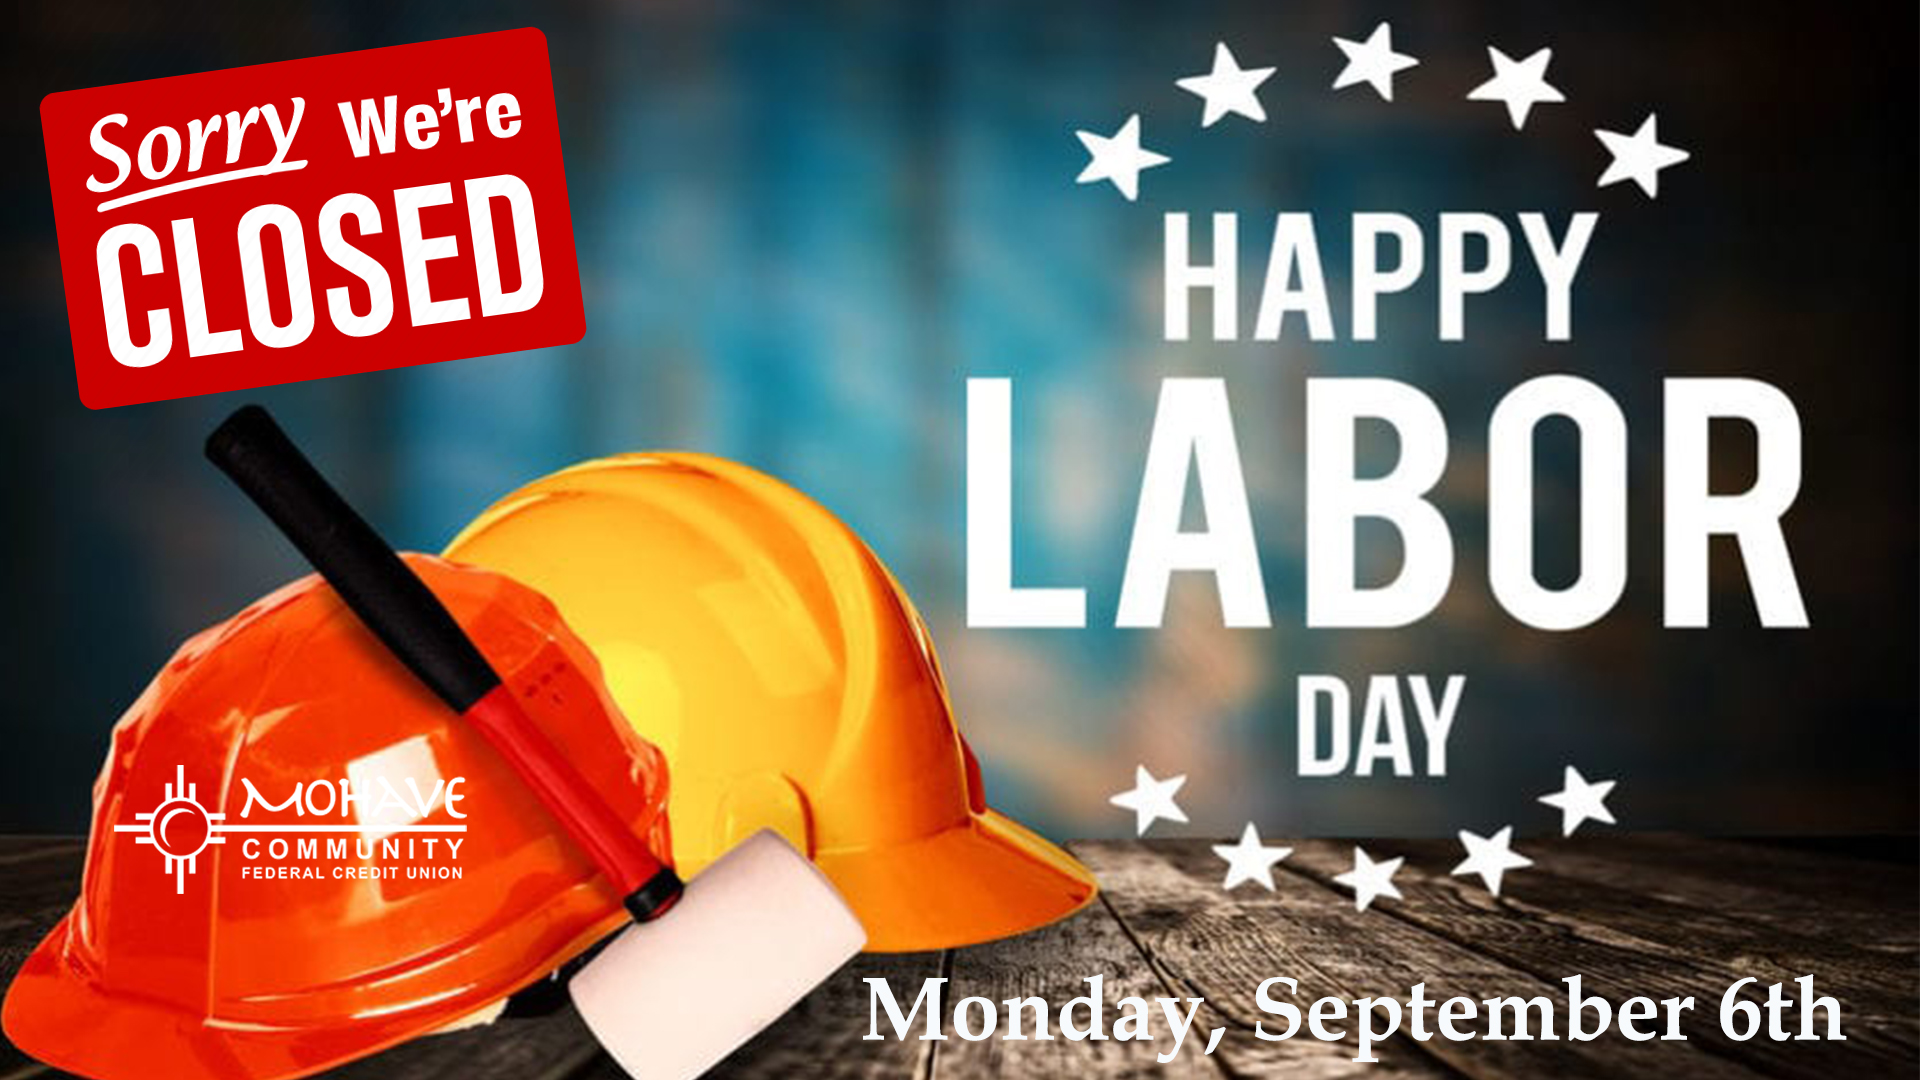 We will be closed Monday, September 6th in observance of Labor Day.